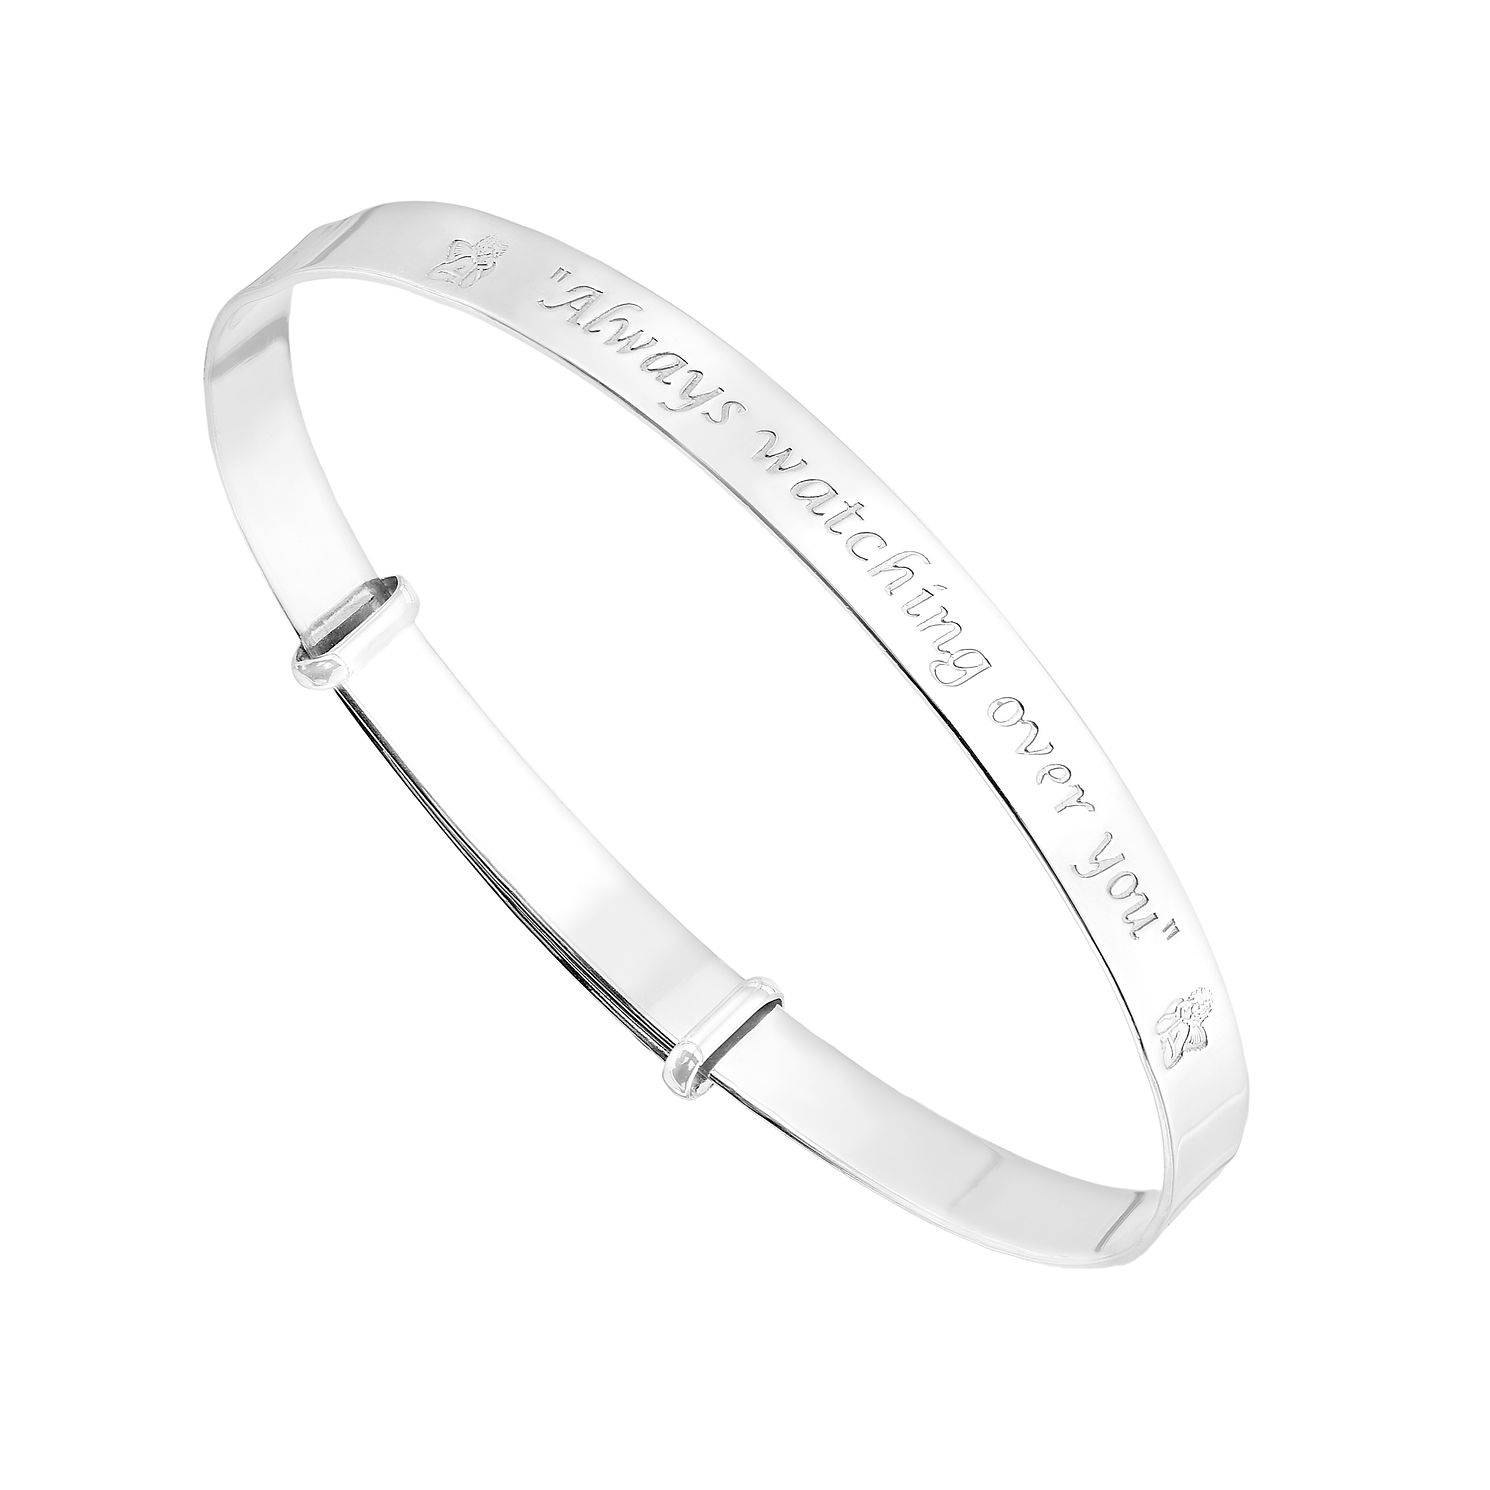 new inscribed bangle bridesmaid ever best amazon spade dp kate bridesmaids jewelry com idiom york friend bracelet